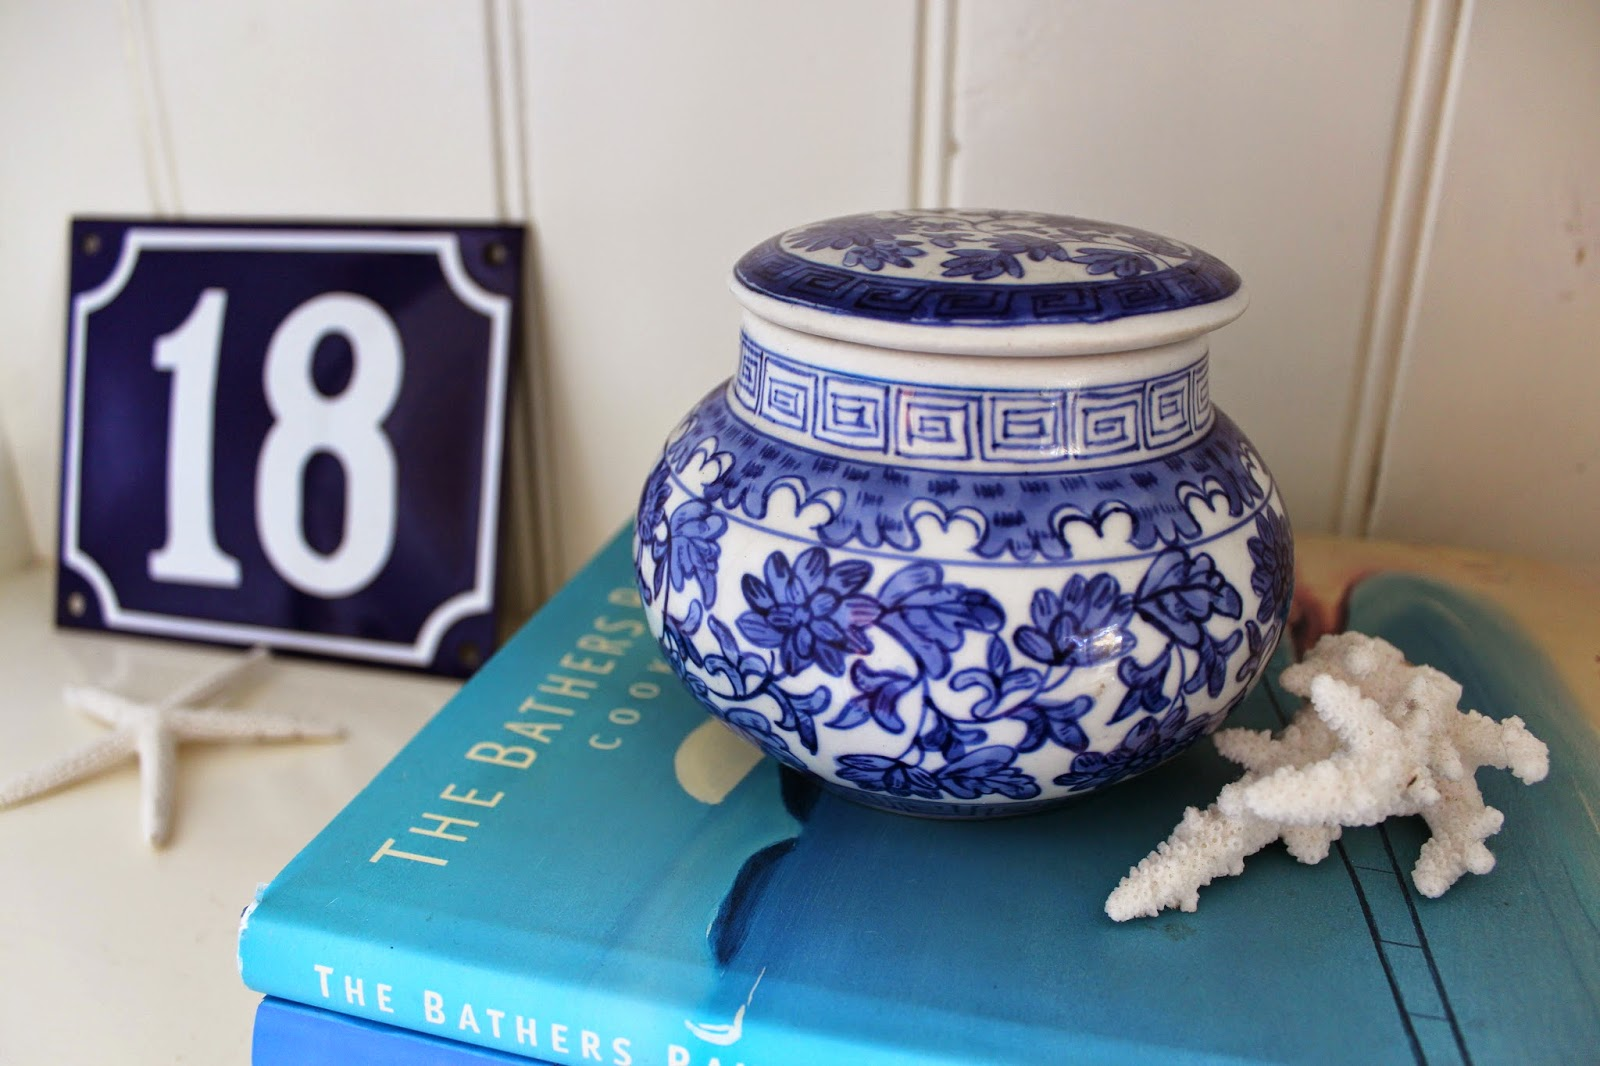 Coastal styling and craft ideas desire empire - Styling Shelves In Coastal Blue And White